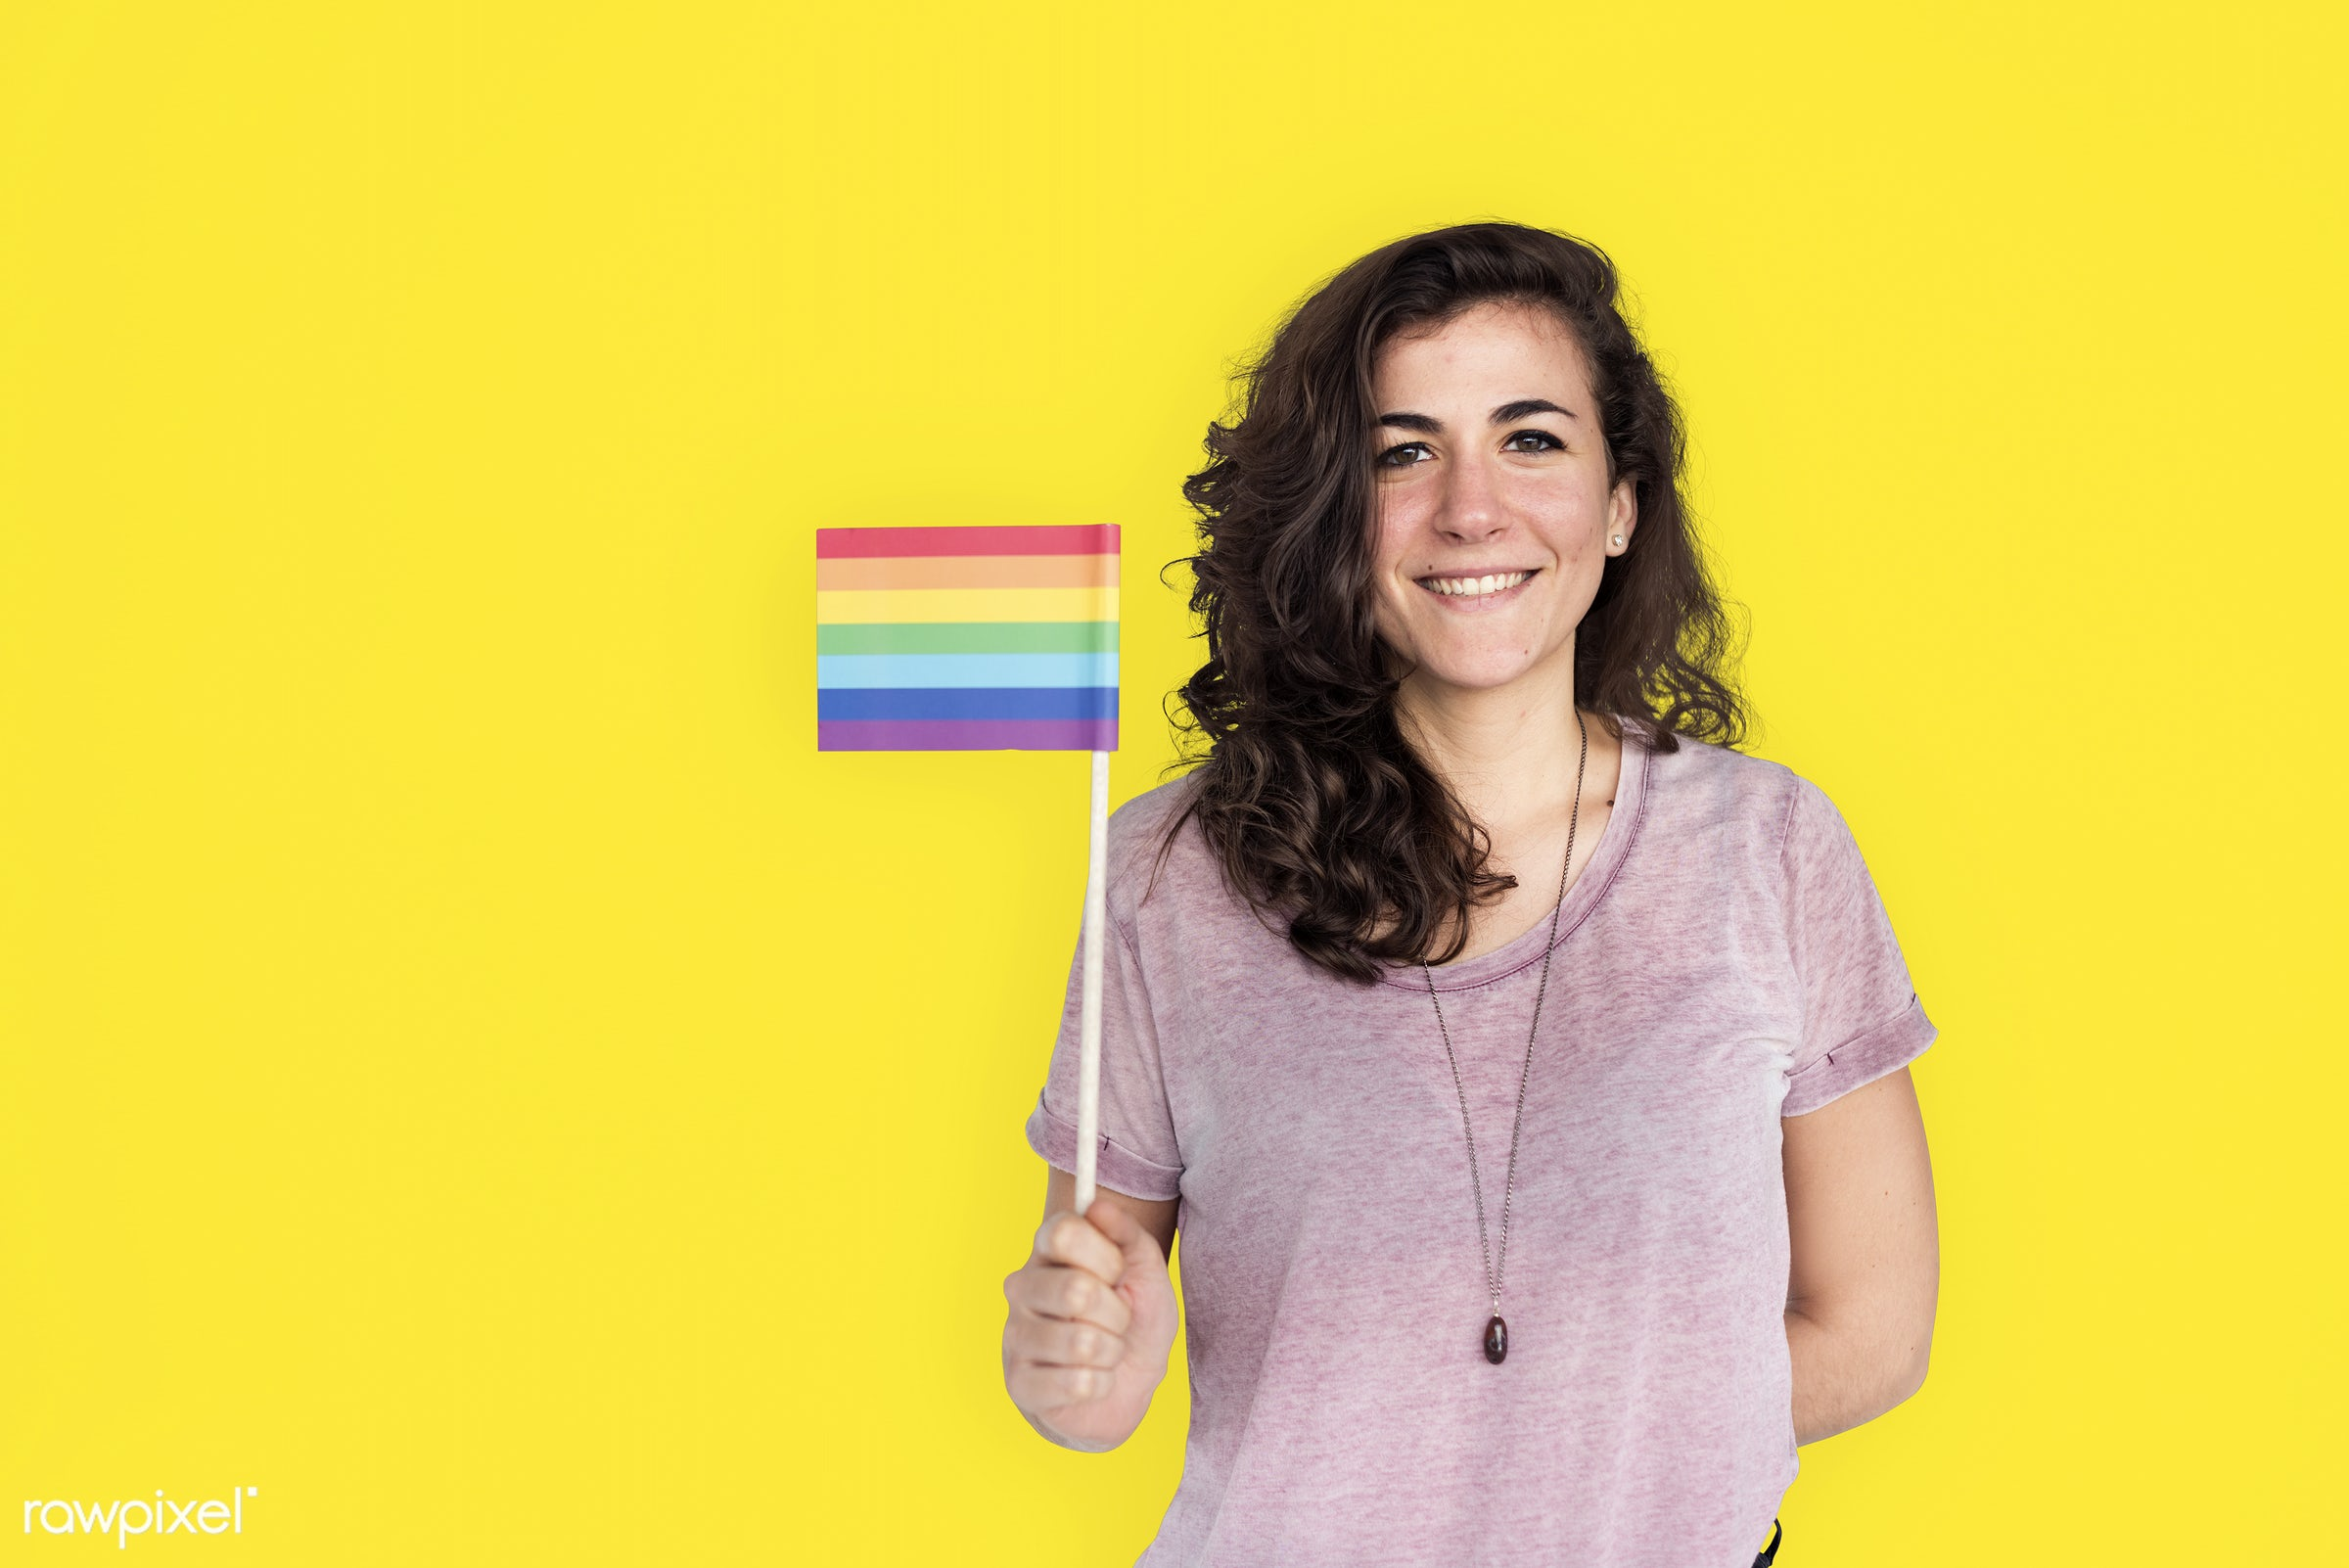 studio, expression, person, holding, yellow, people, lesbian, bisexual, solo, woman, smile, cheerful, smiling, isolated,...